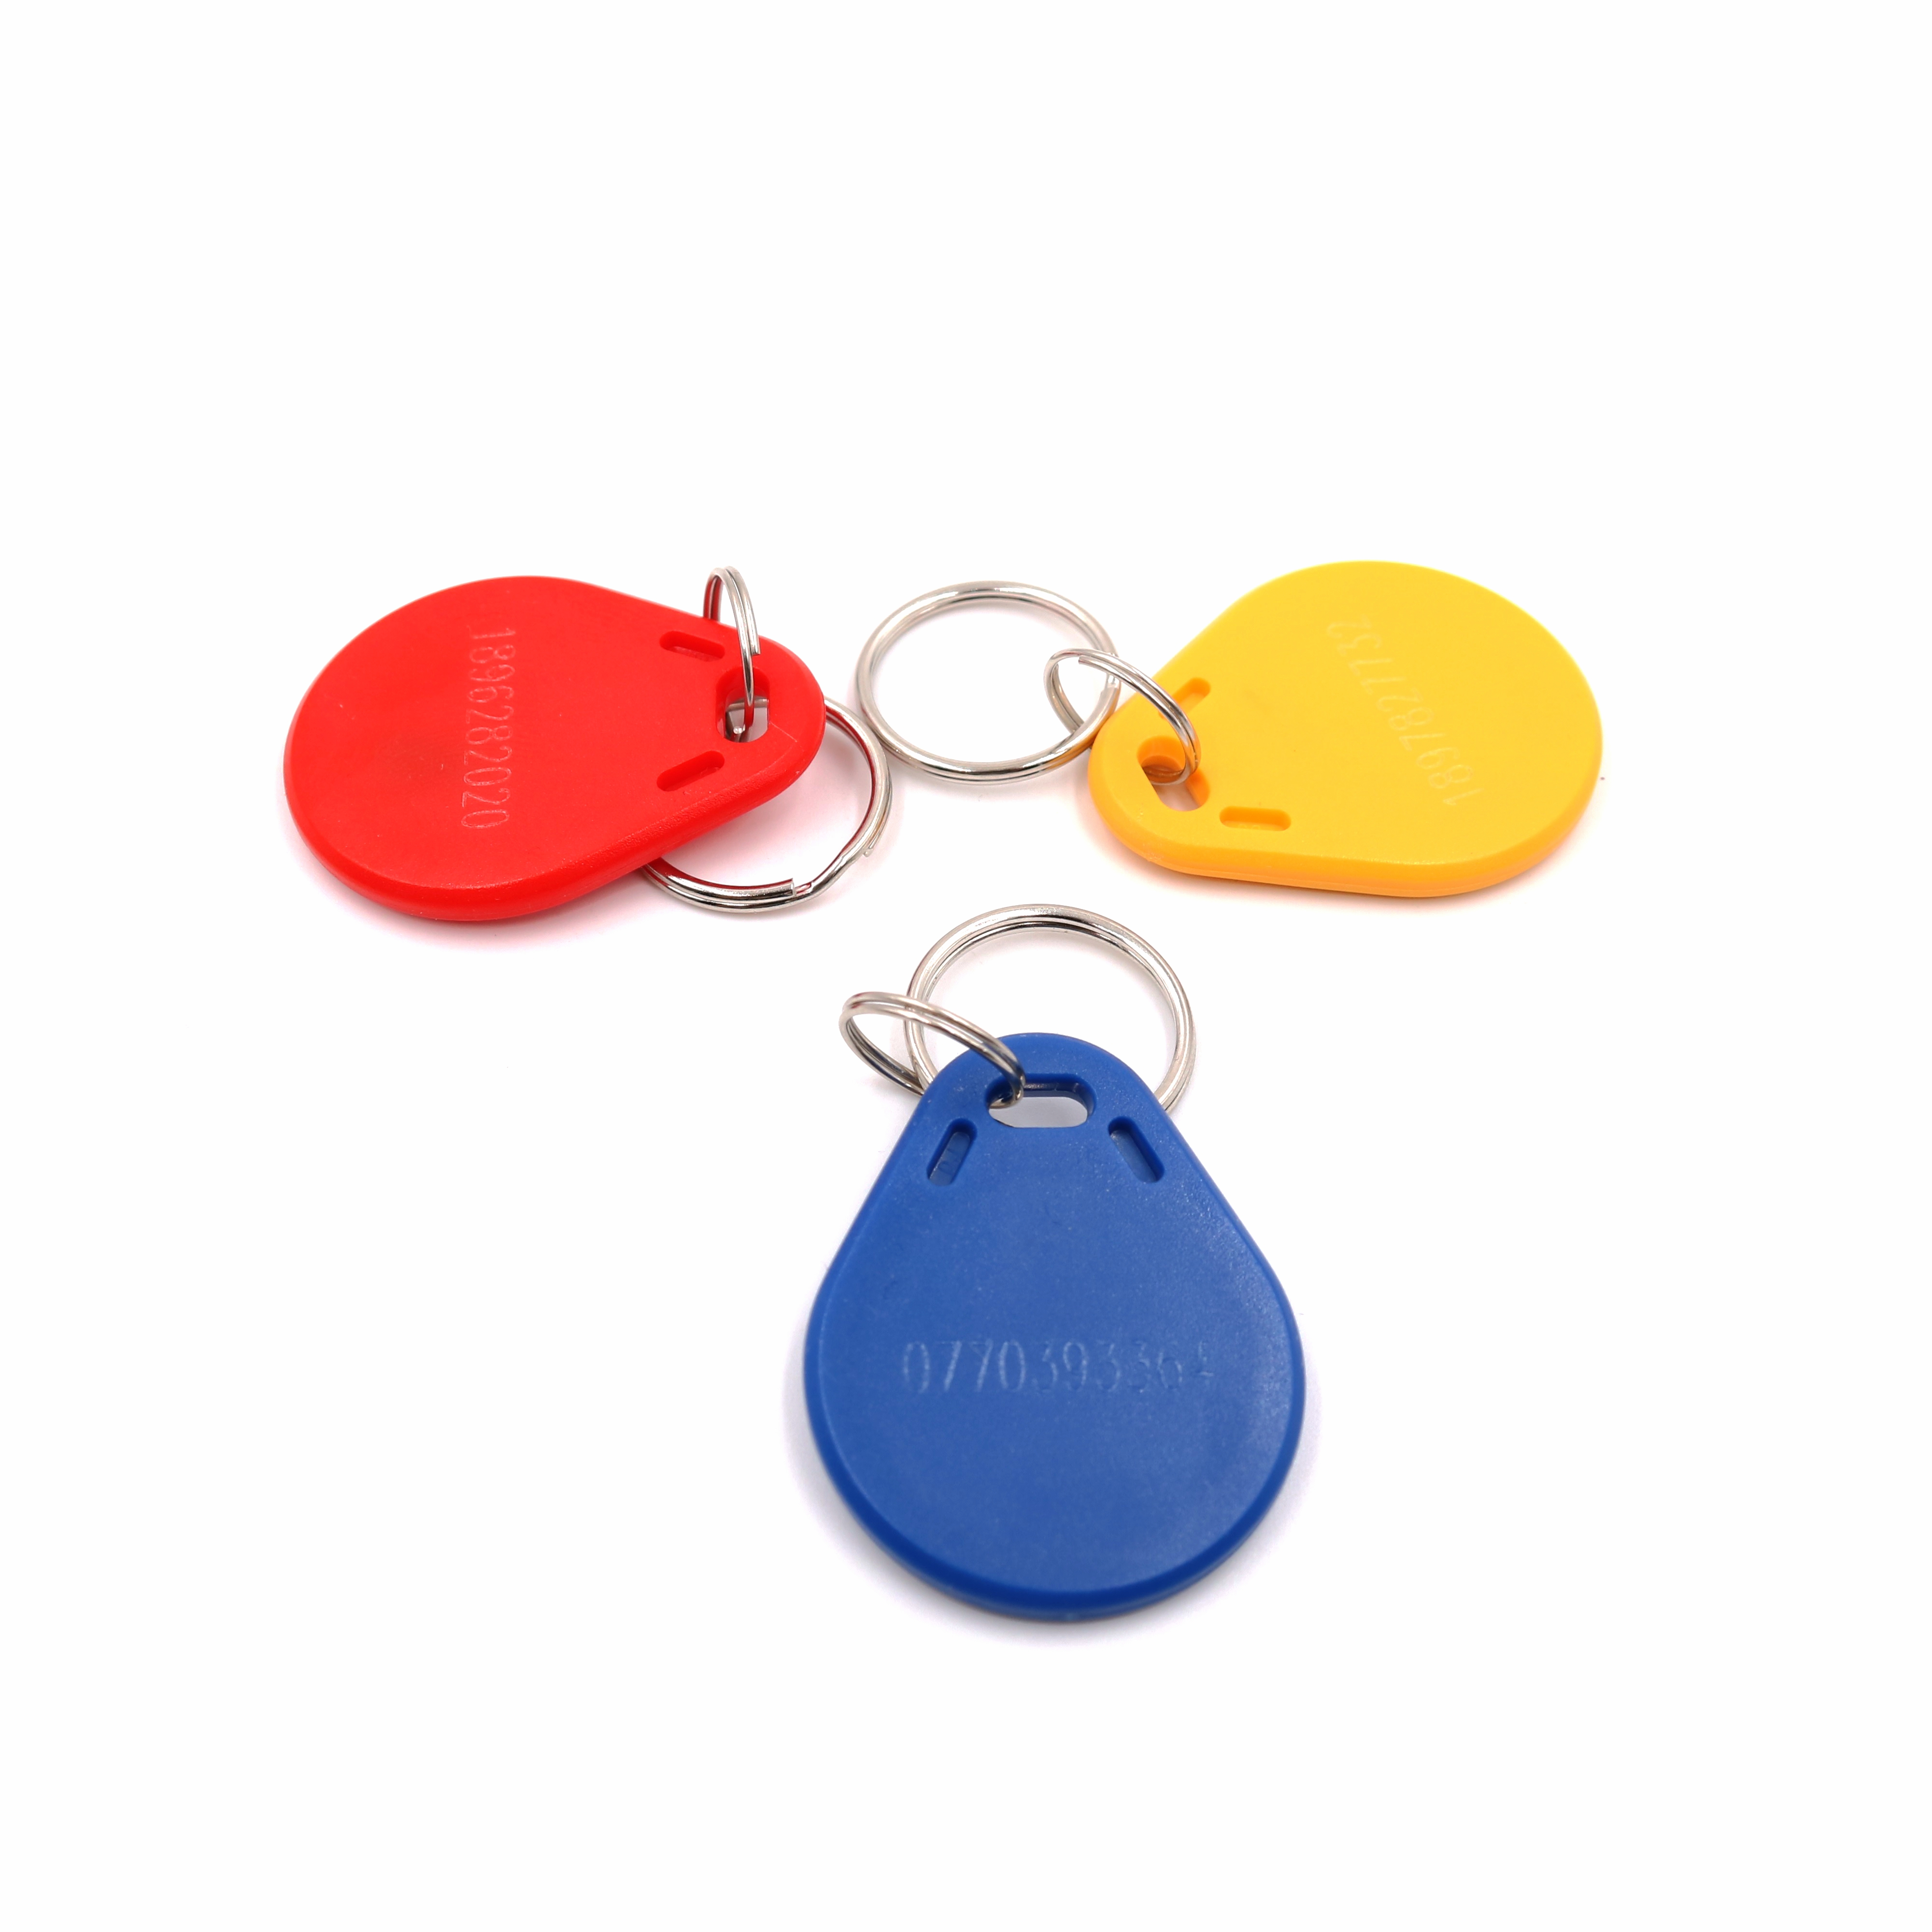 IC 13.56mHZ F1108 Chip S50 MF1 PVC Keyfob Tag Engraved code 8H10D UID ISO14443A Keychains s50 ic card 13 56mhz 1024bit 14443a ic tag sticker 1k m1 f1108 mf1